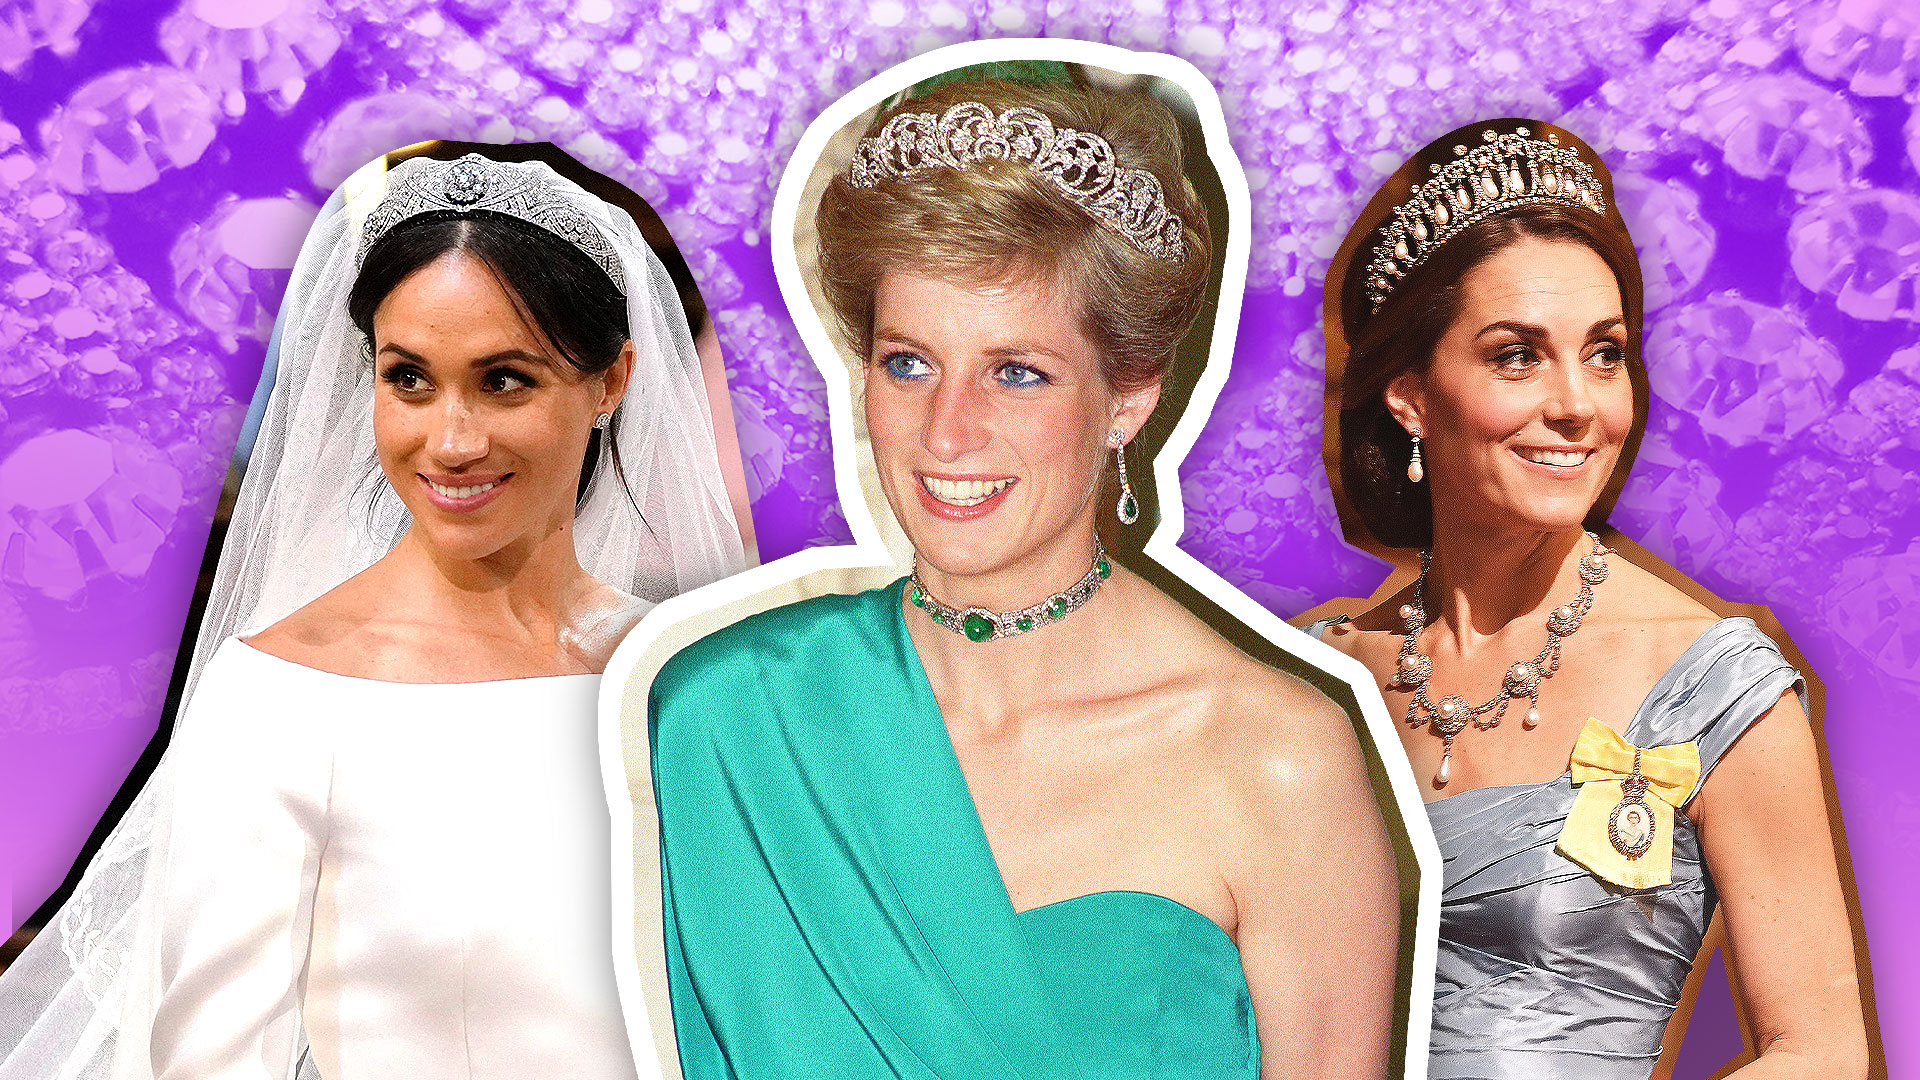 meghan markle kate middleton wearing princess diana s jewelry photos stylecaster meghan markle kate middleton wearing